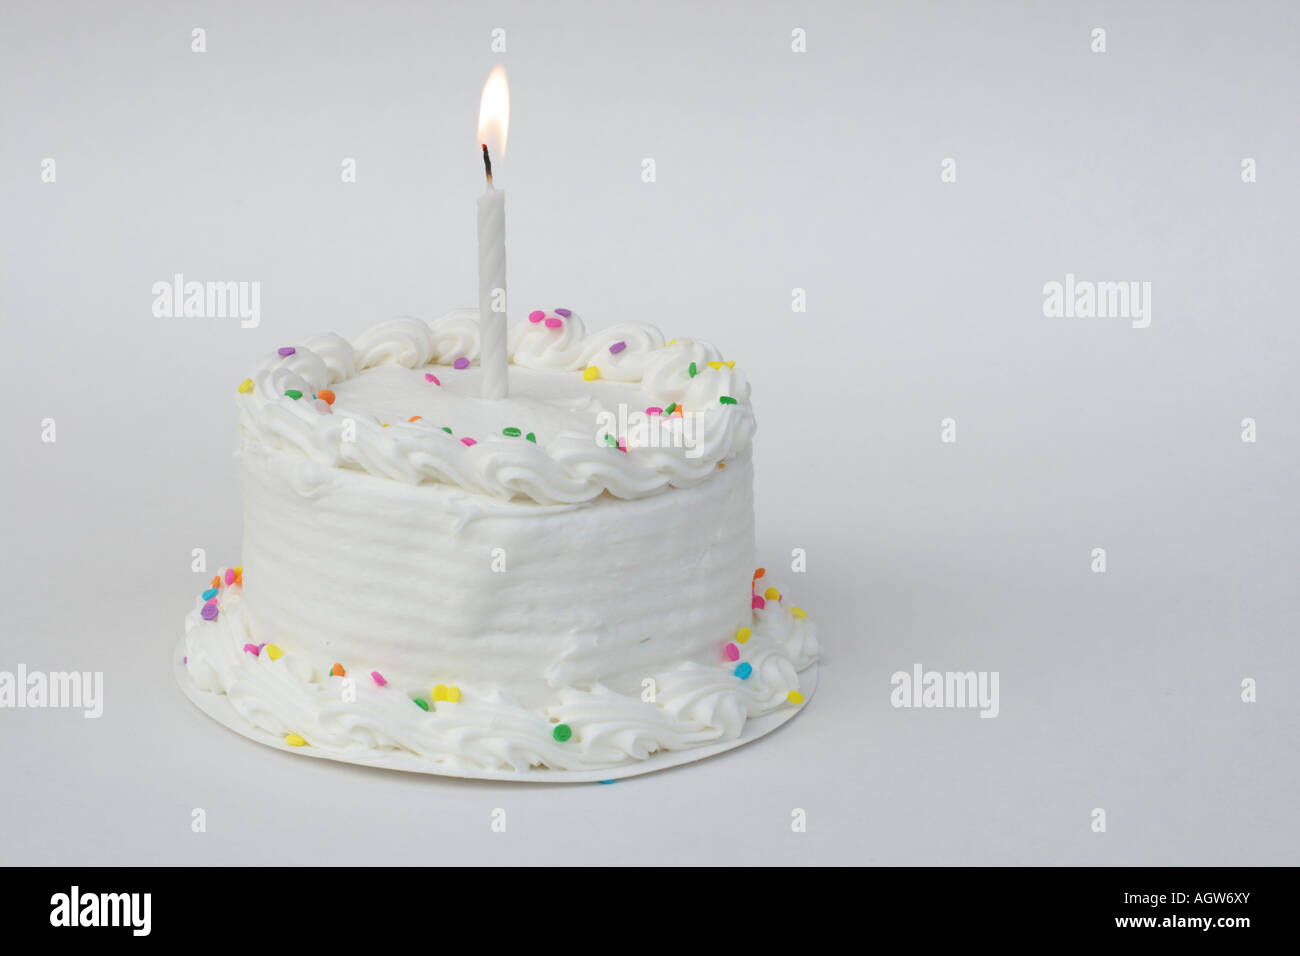 Small White Birthday Cake With Sprinkles